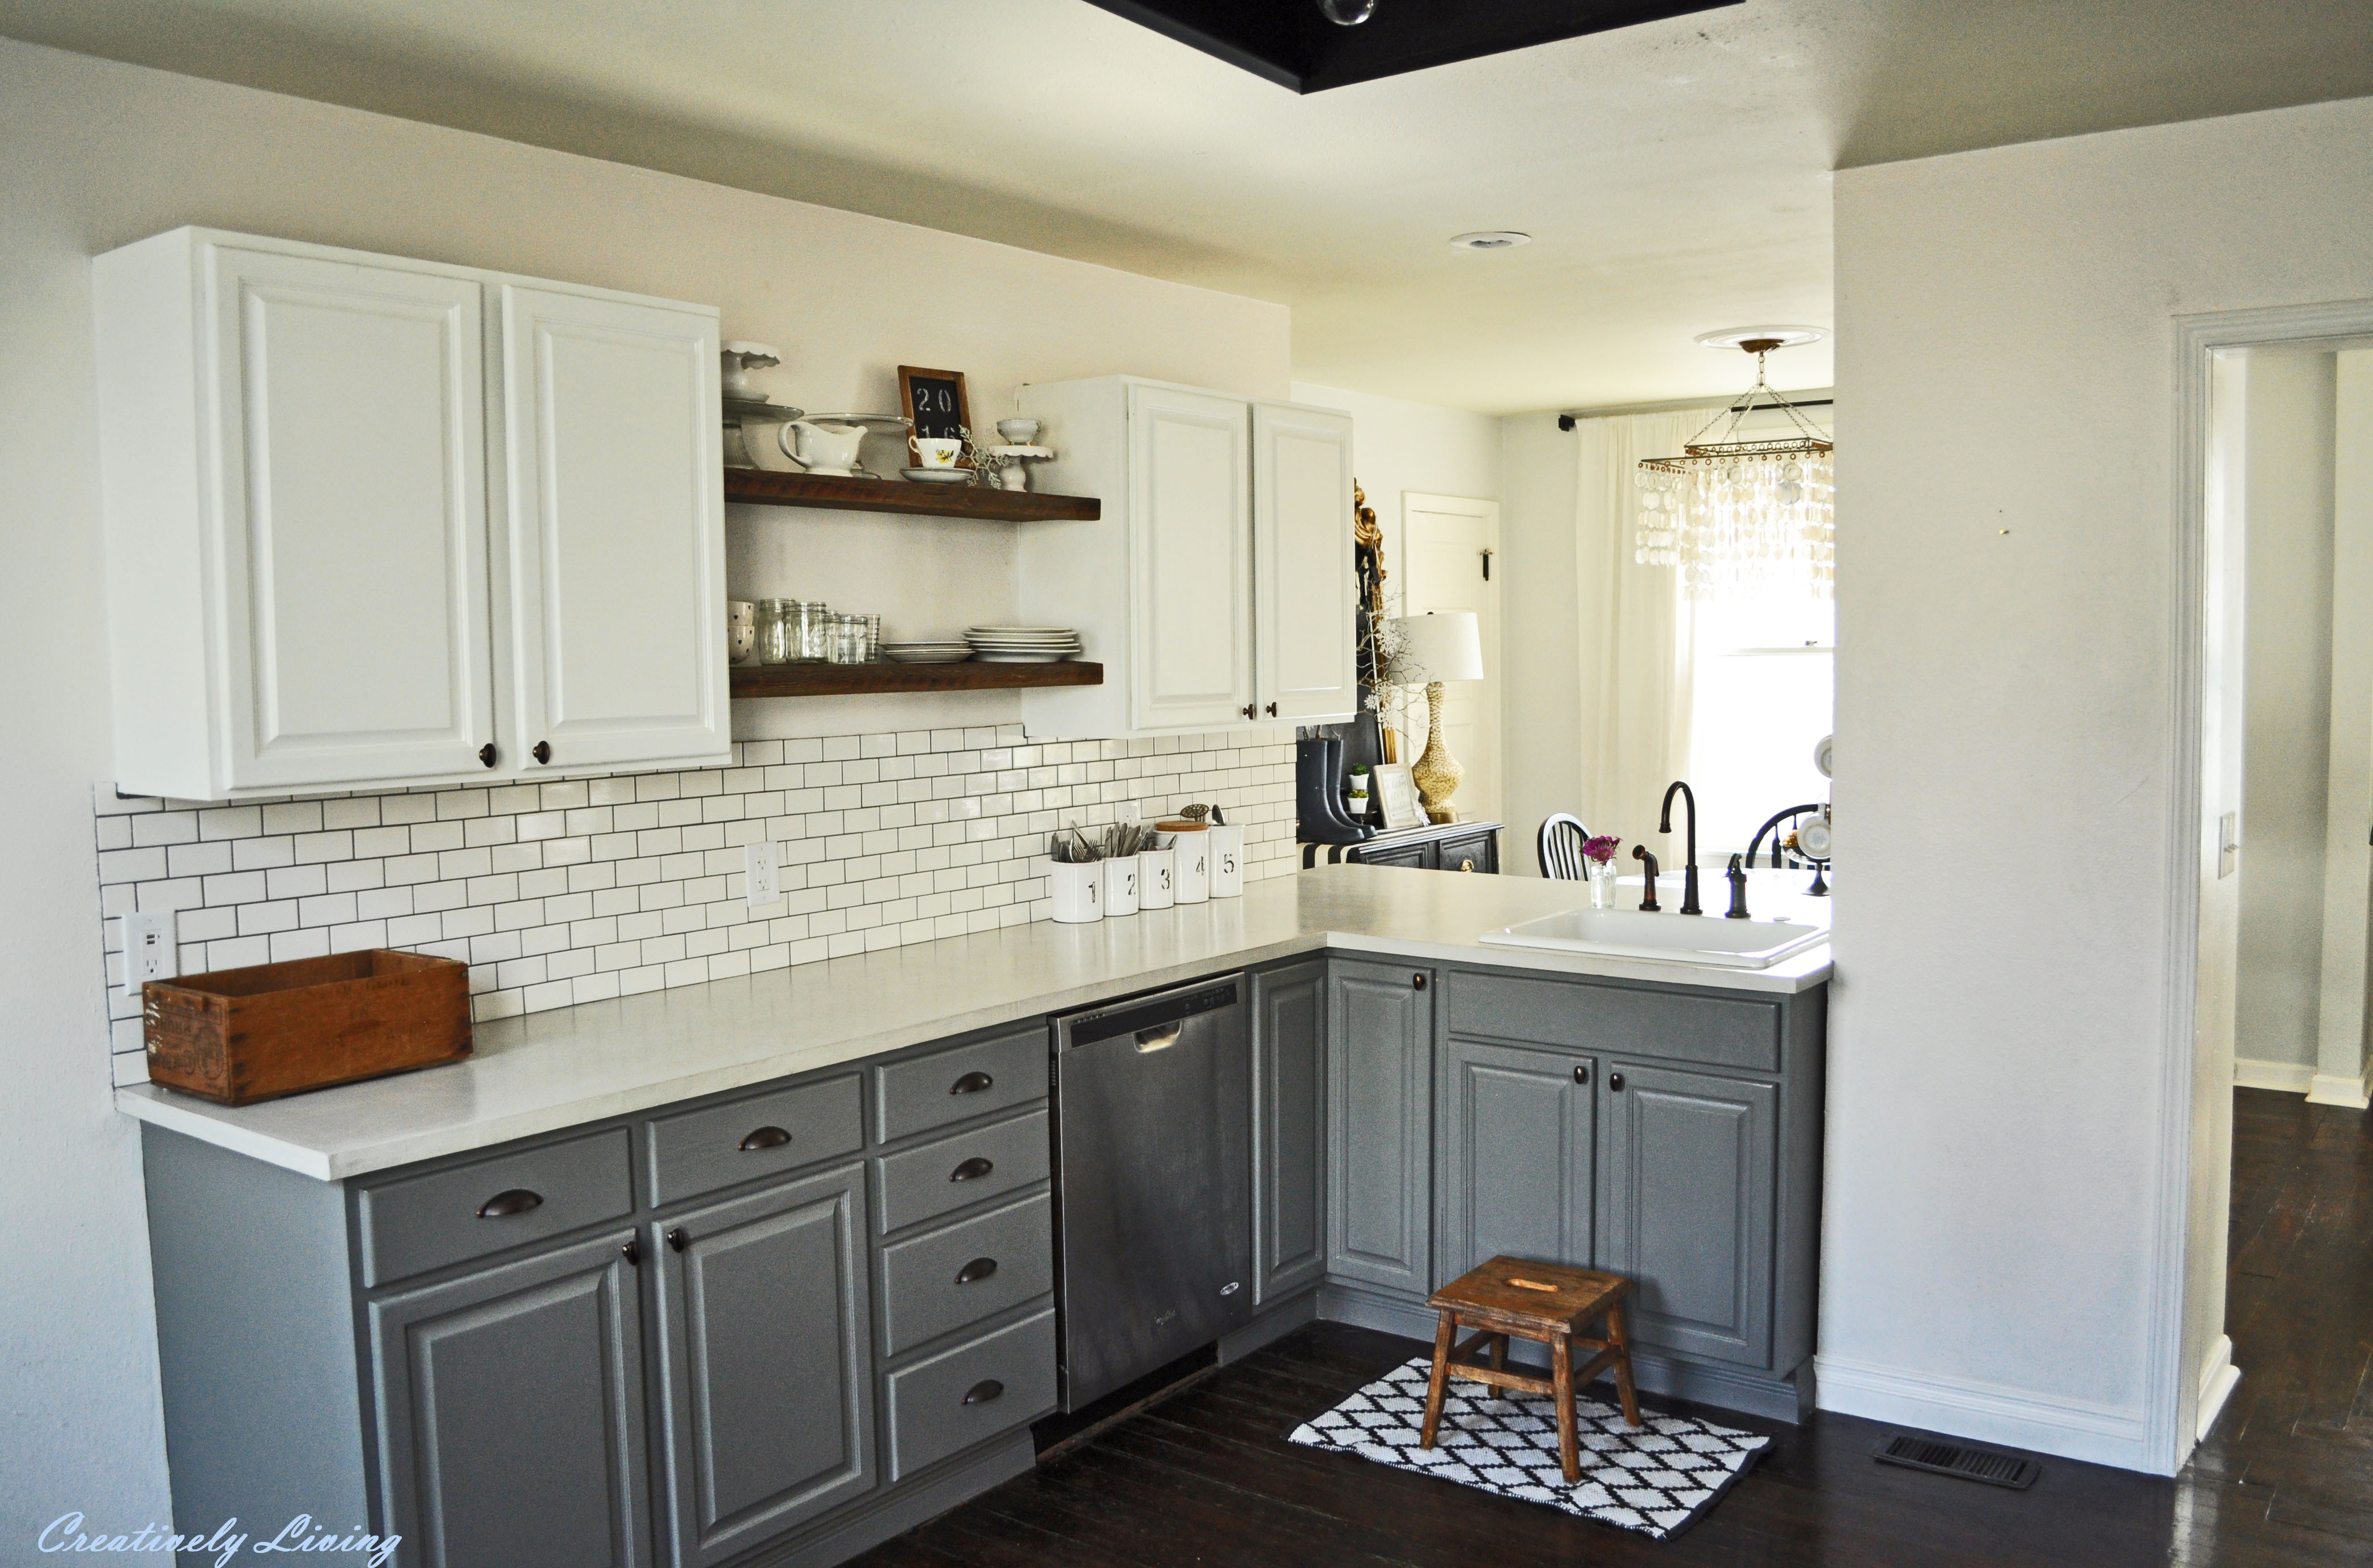 Kitchen makeover reveals JHYXZID